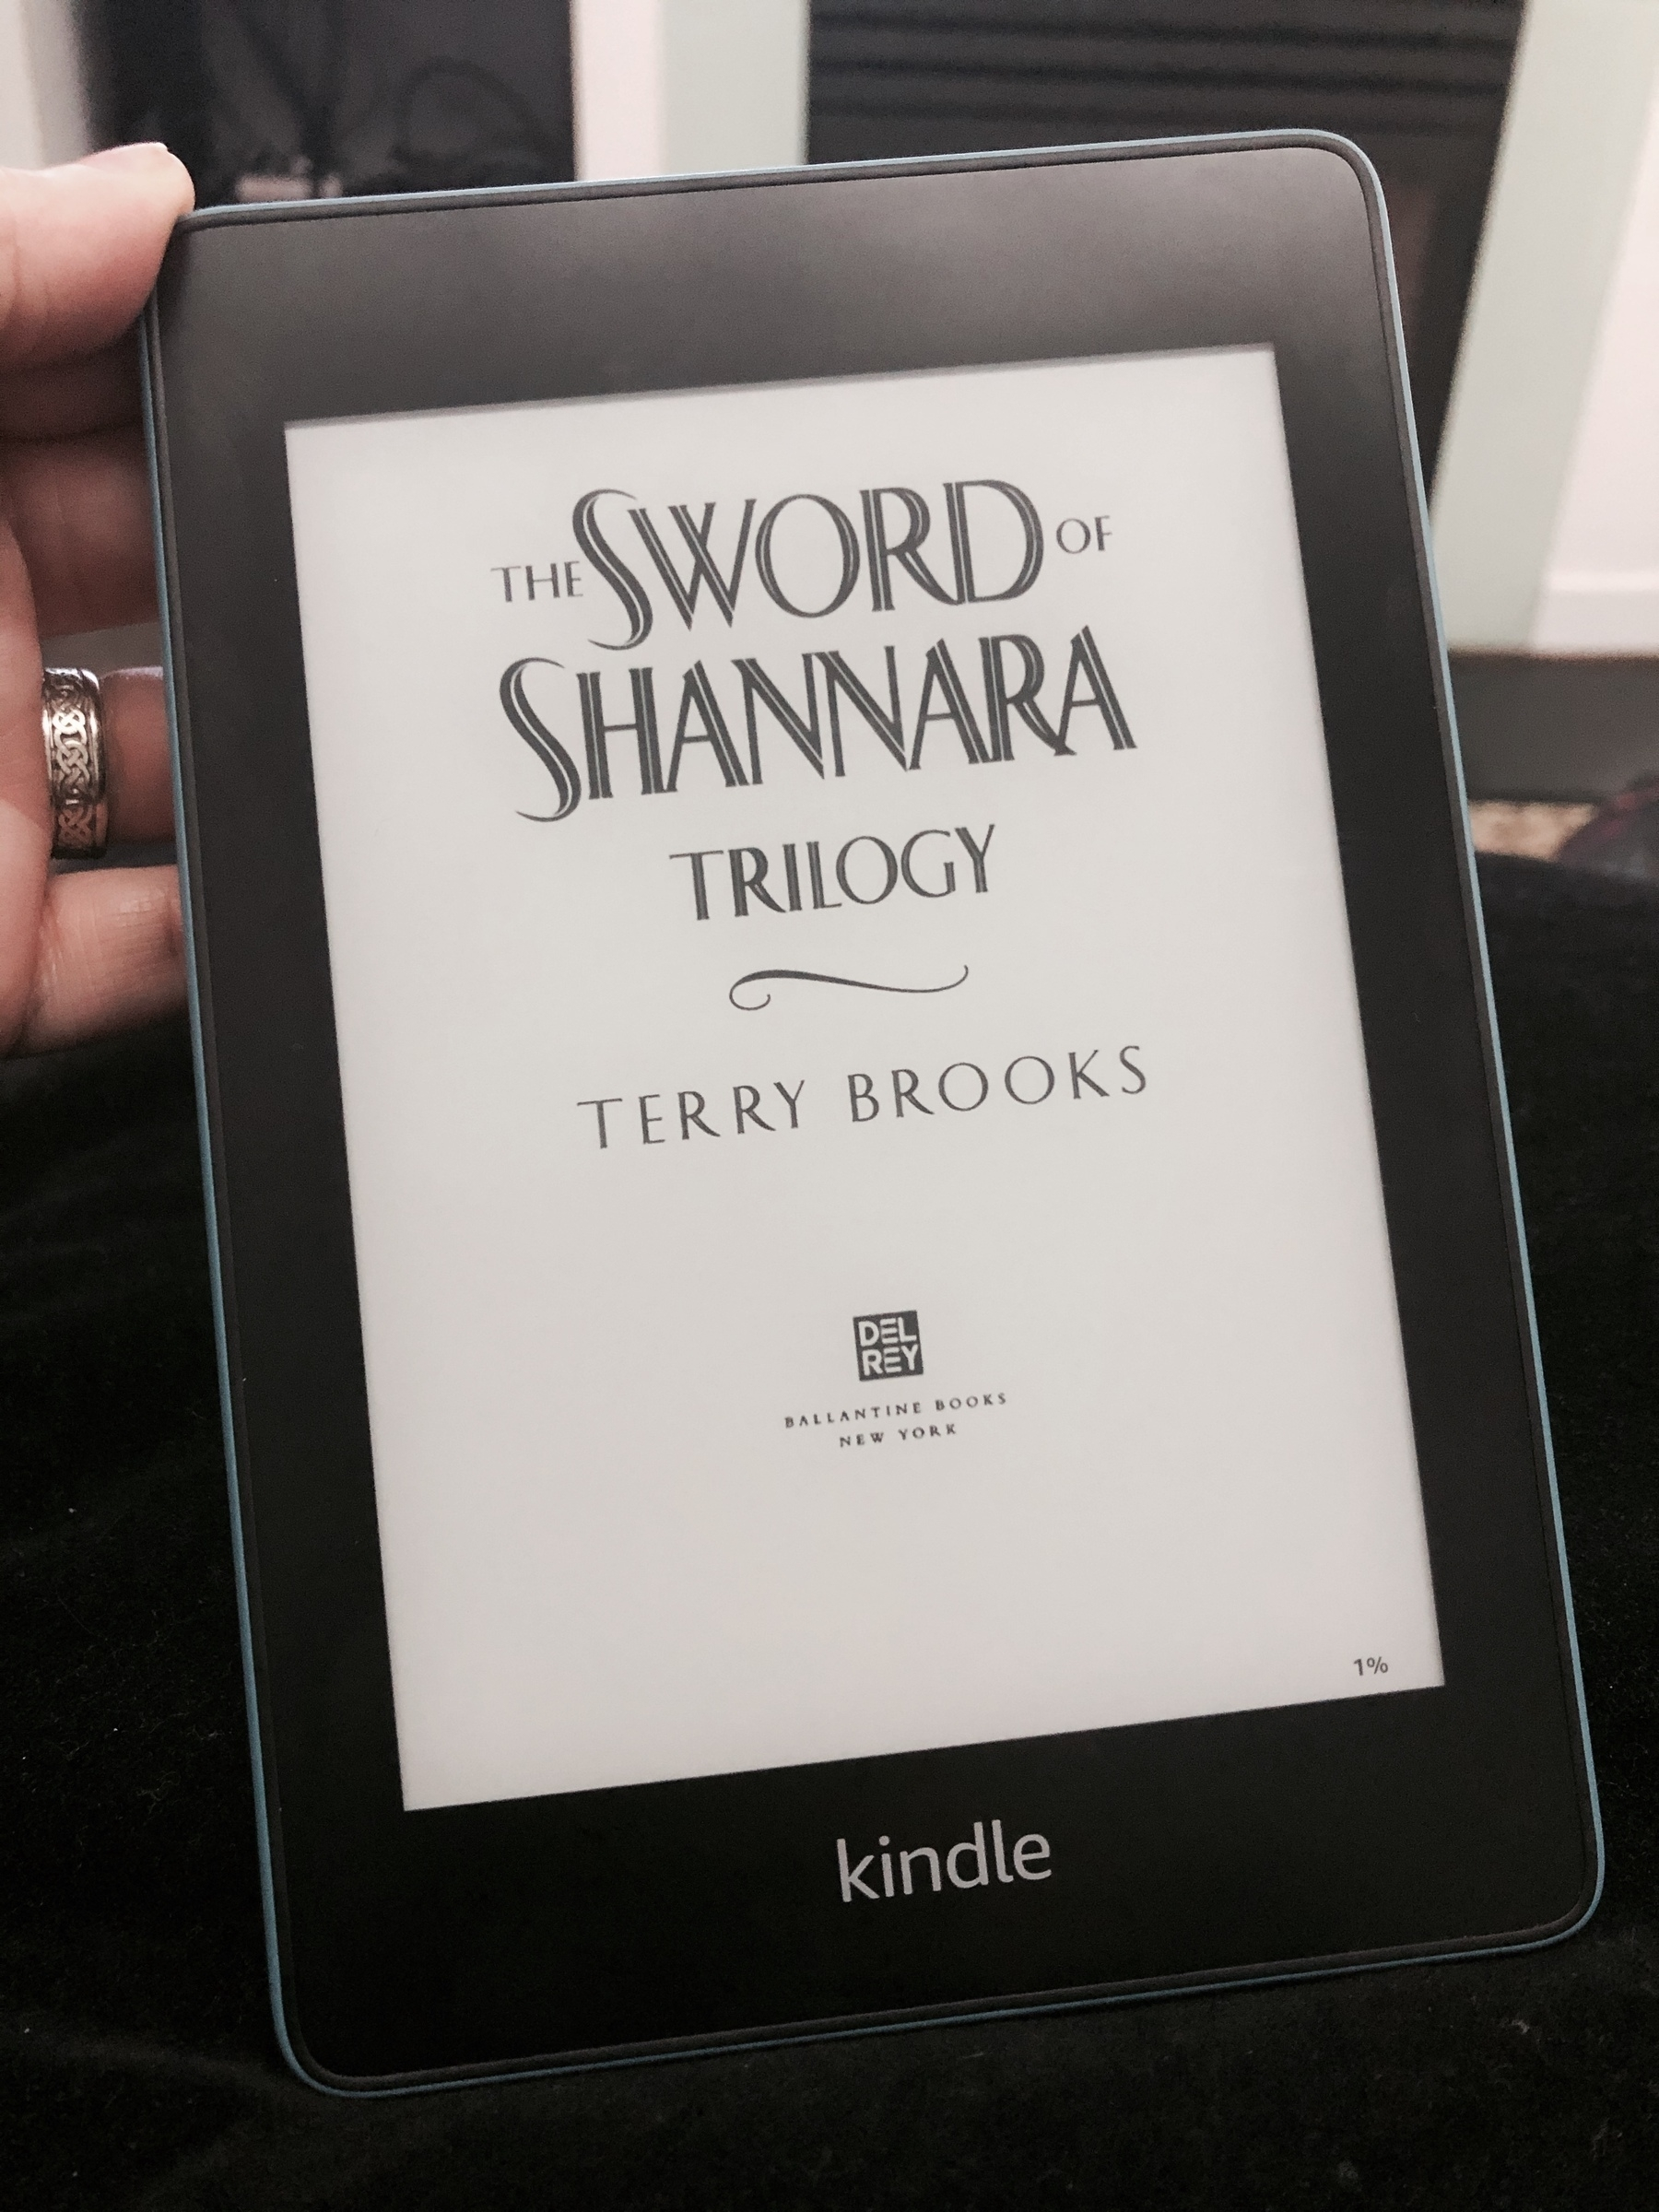 A Kindle Paperwhite showing the title page of The Sword of Shannara